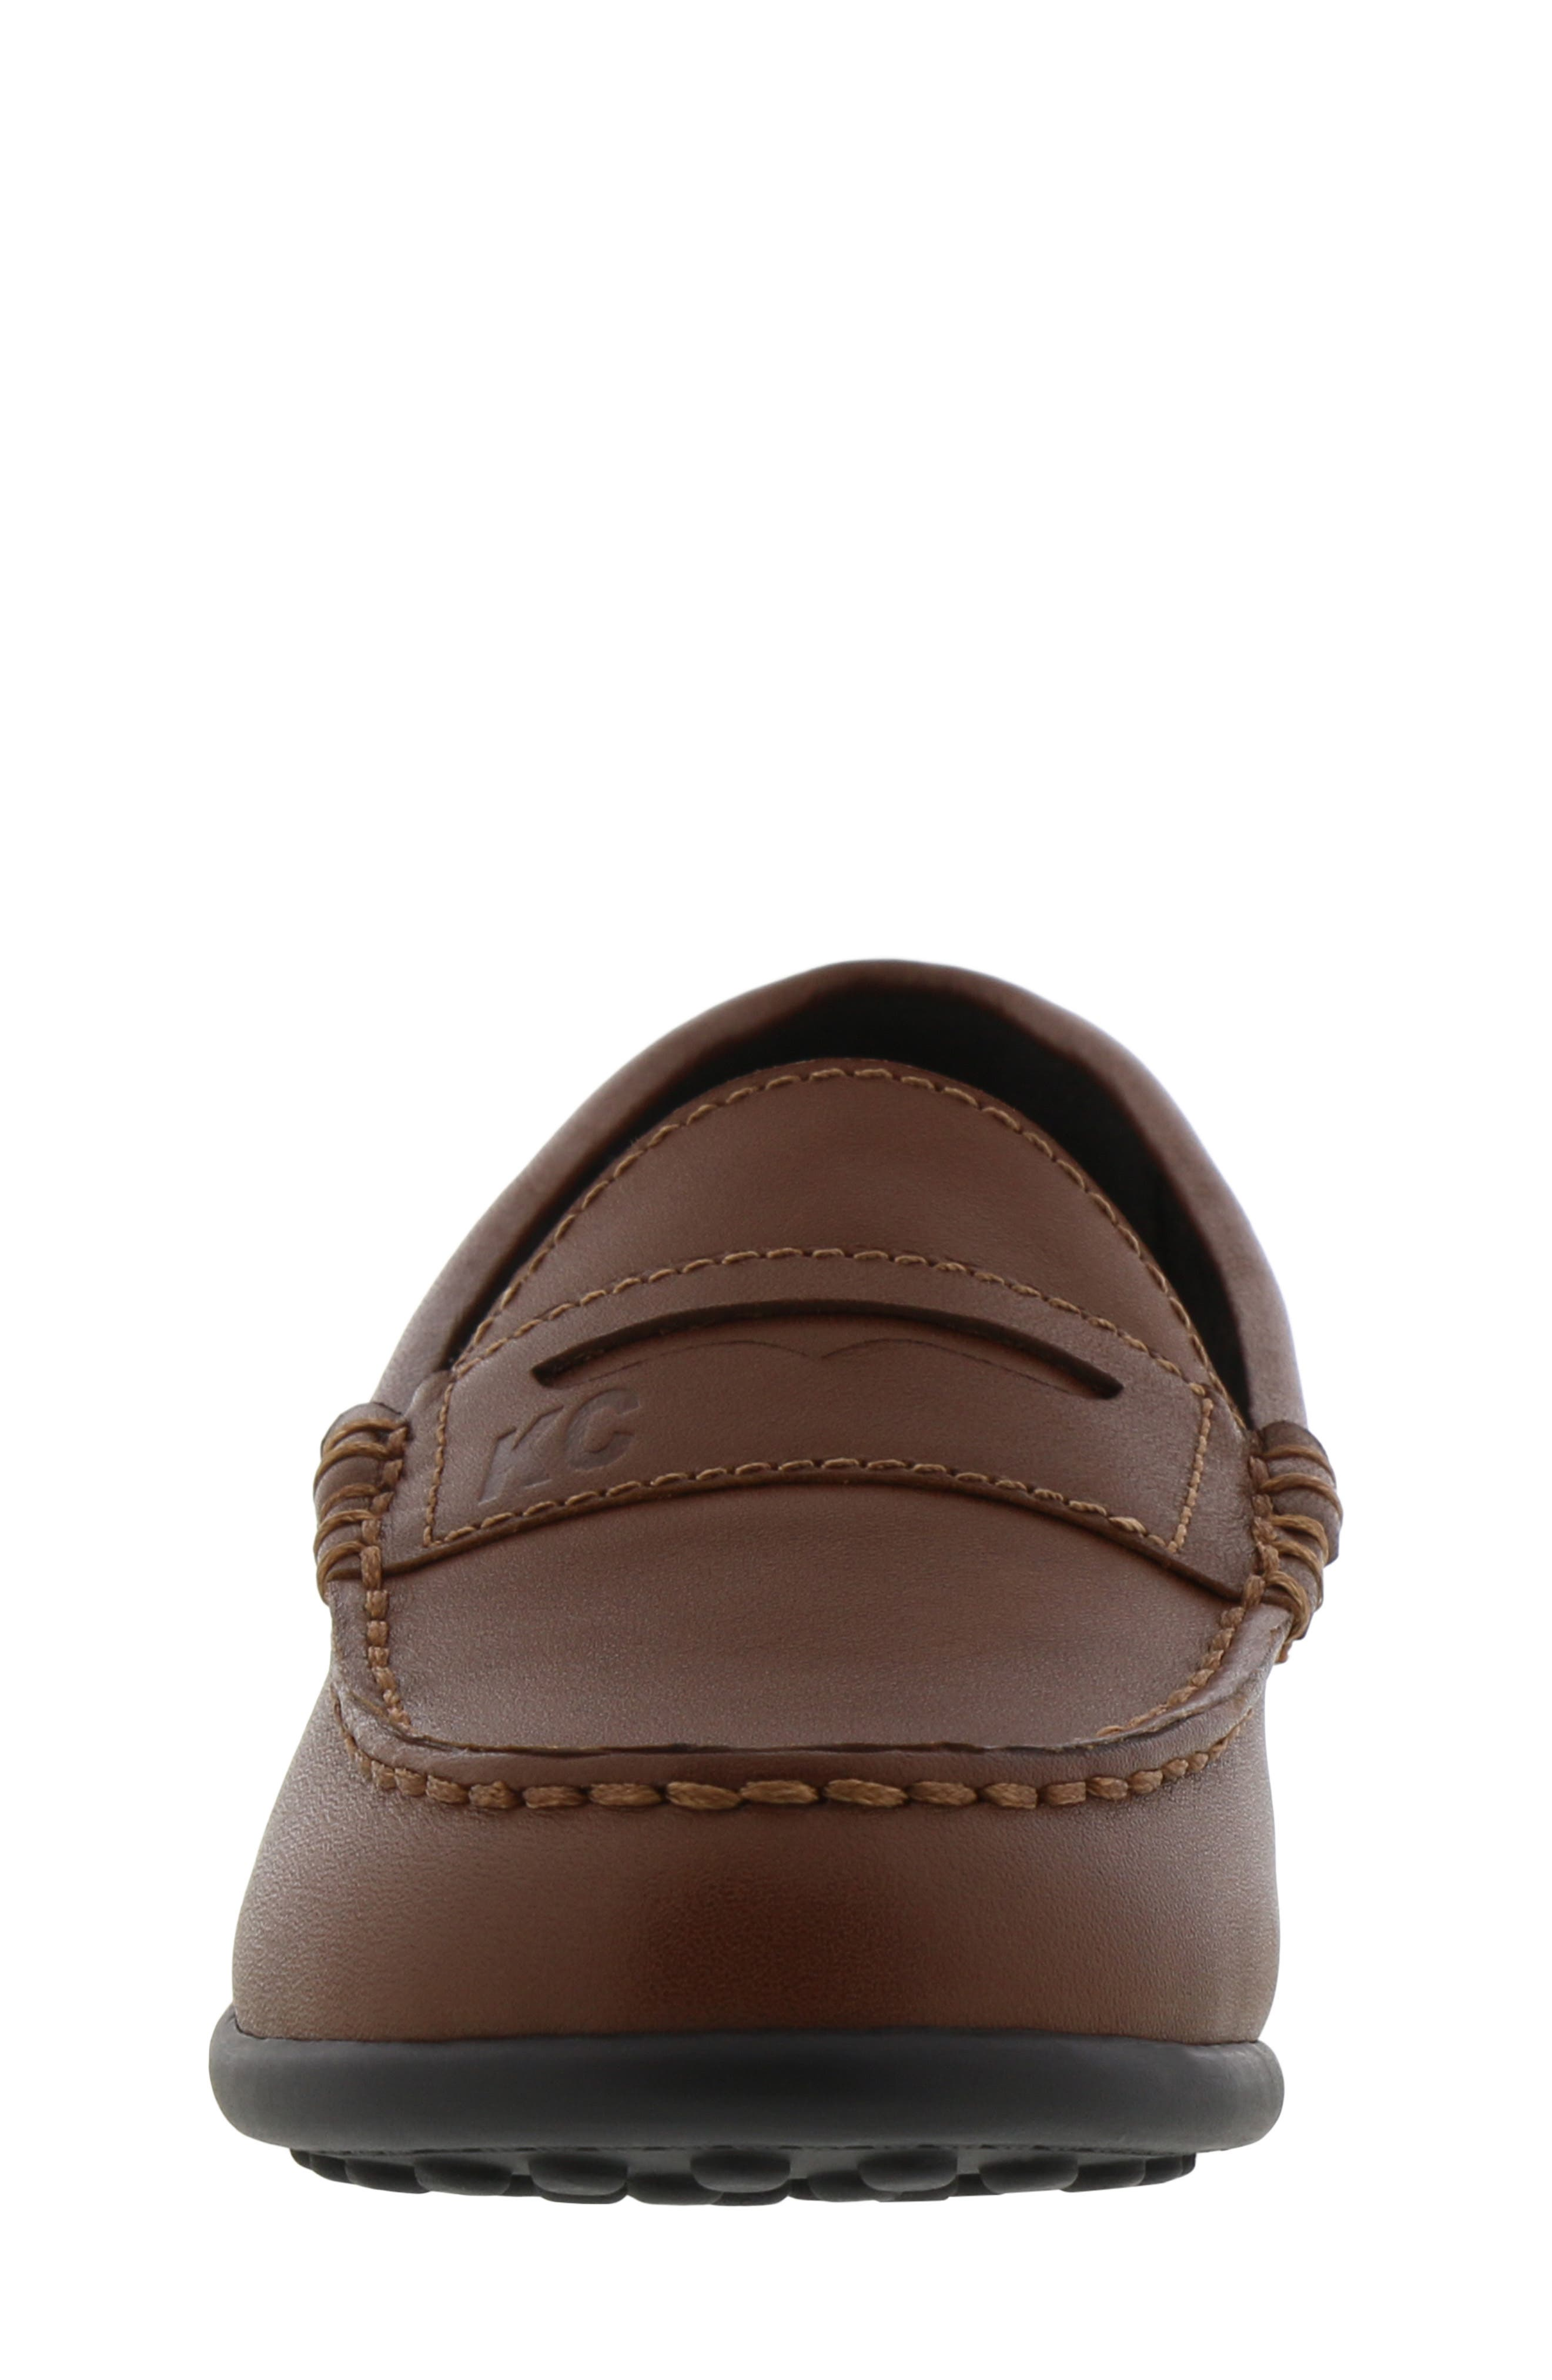 REACTION KENNETH COLE, Helio Gear Loafer, Alternate thumbnail 4, color, COGNAC